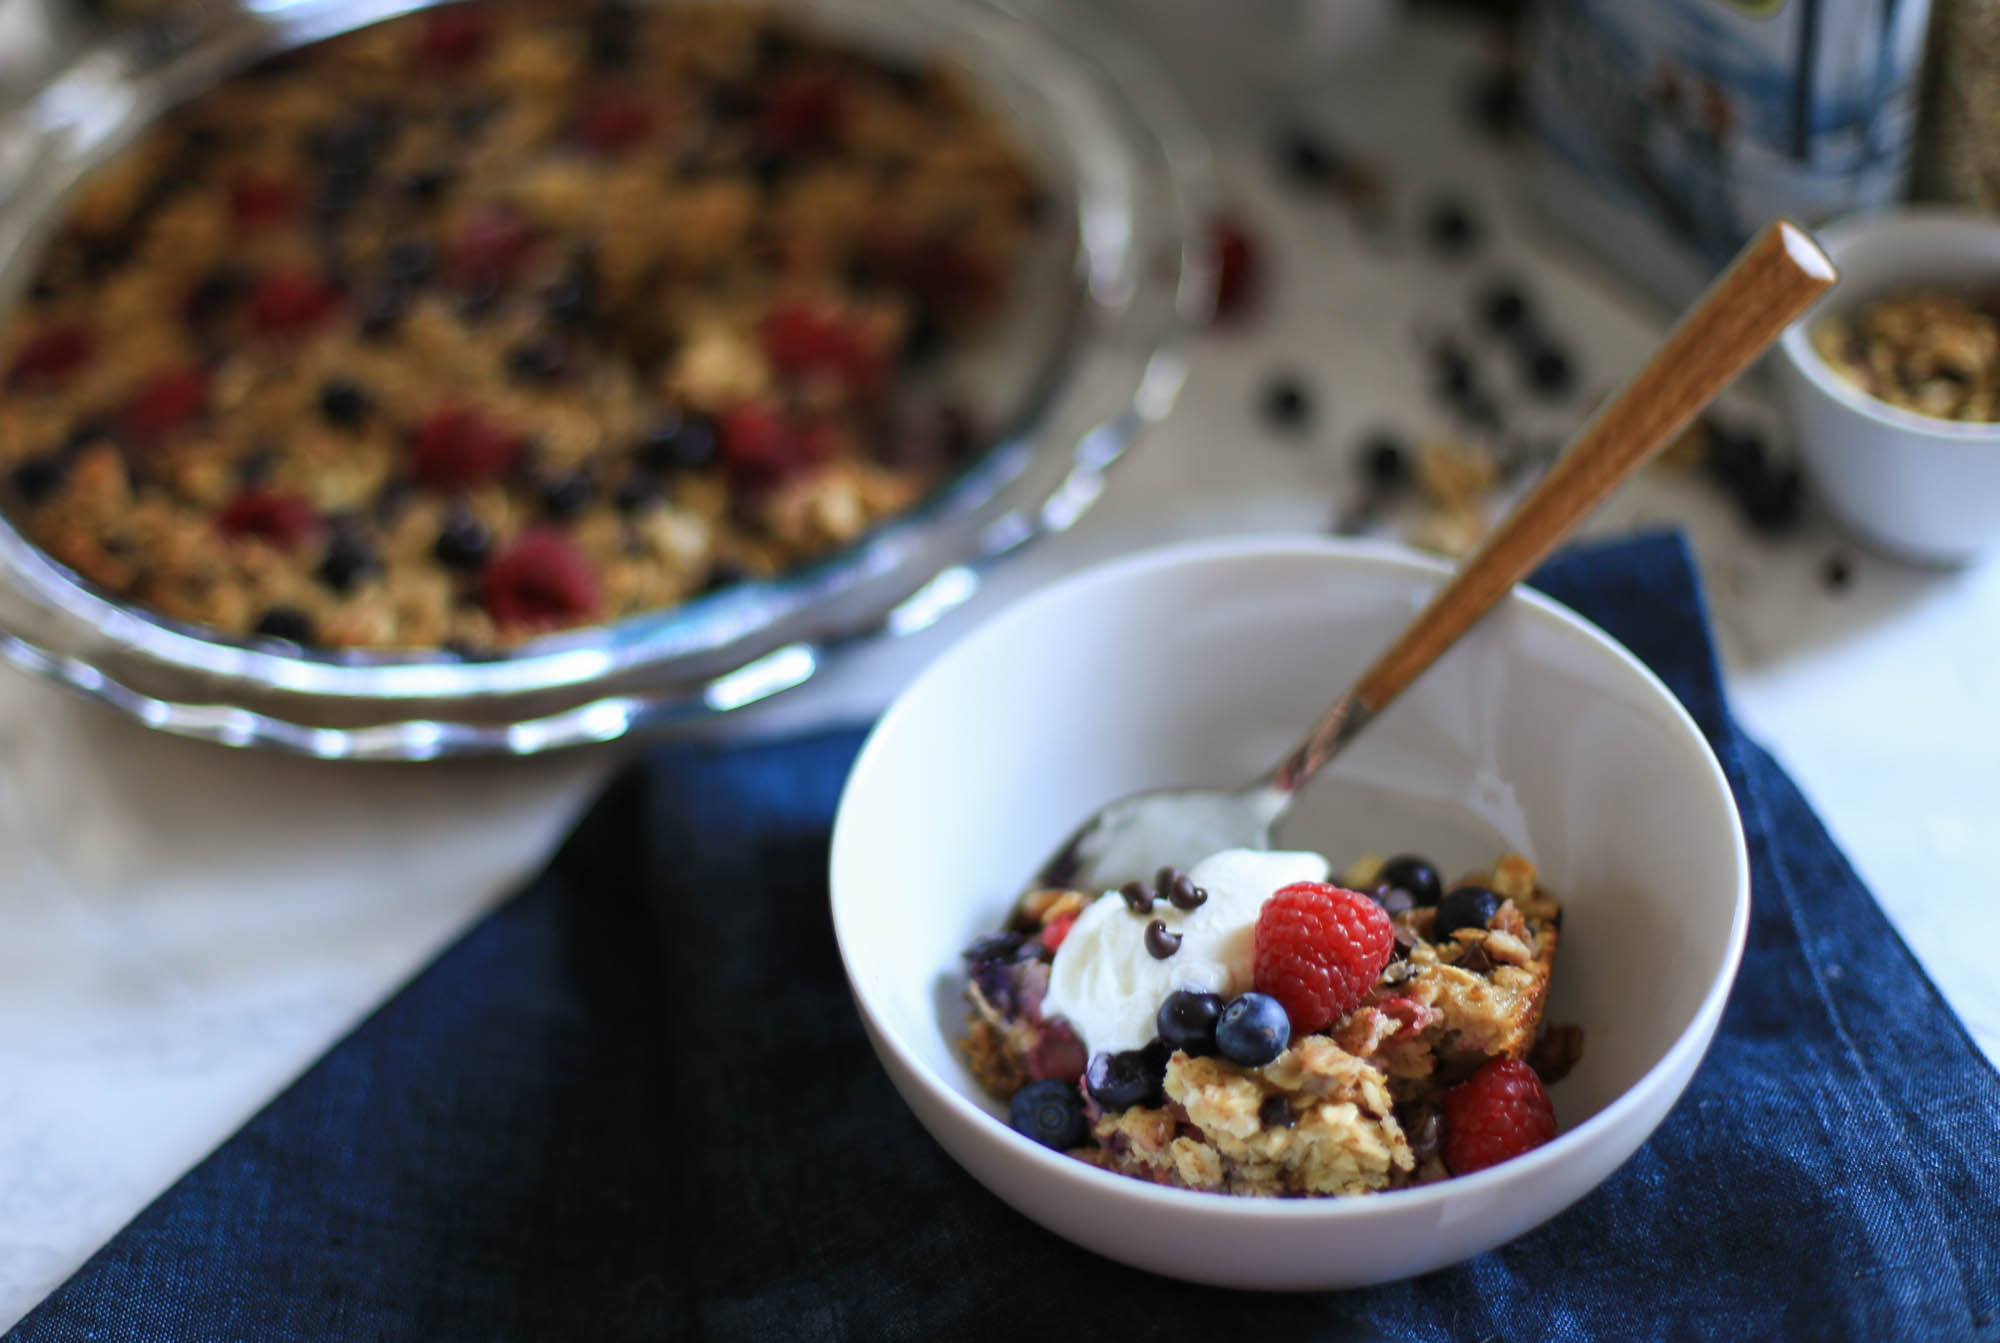 Easy Baked Oatmeal with Berries by The District Table